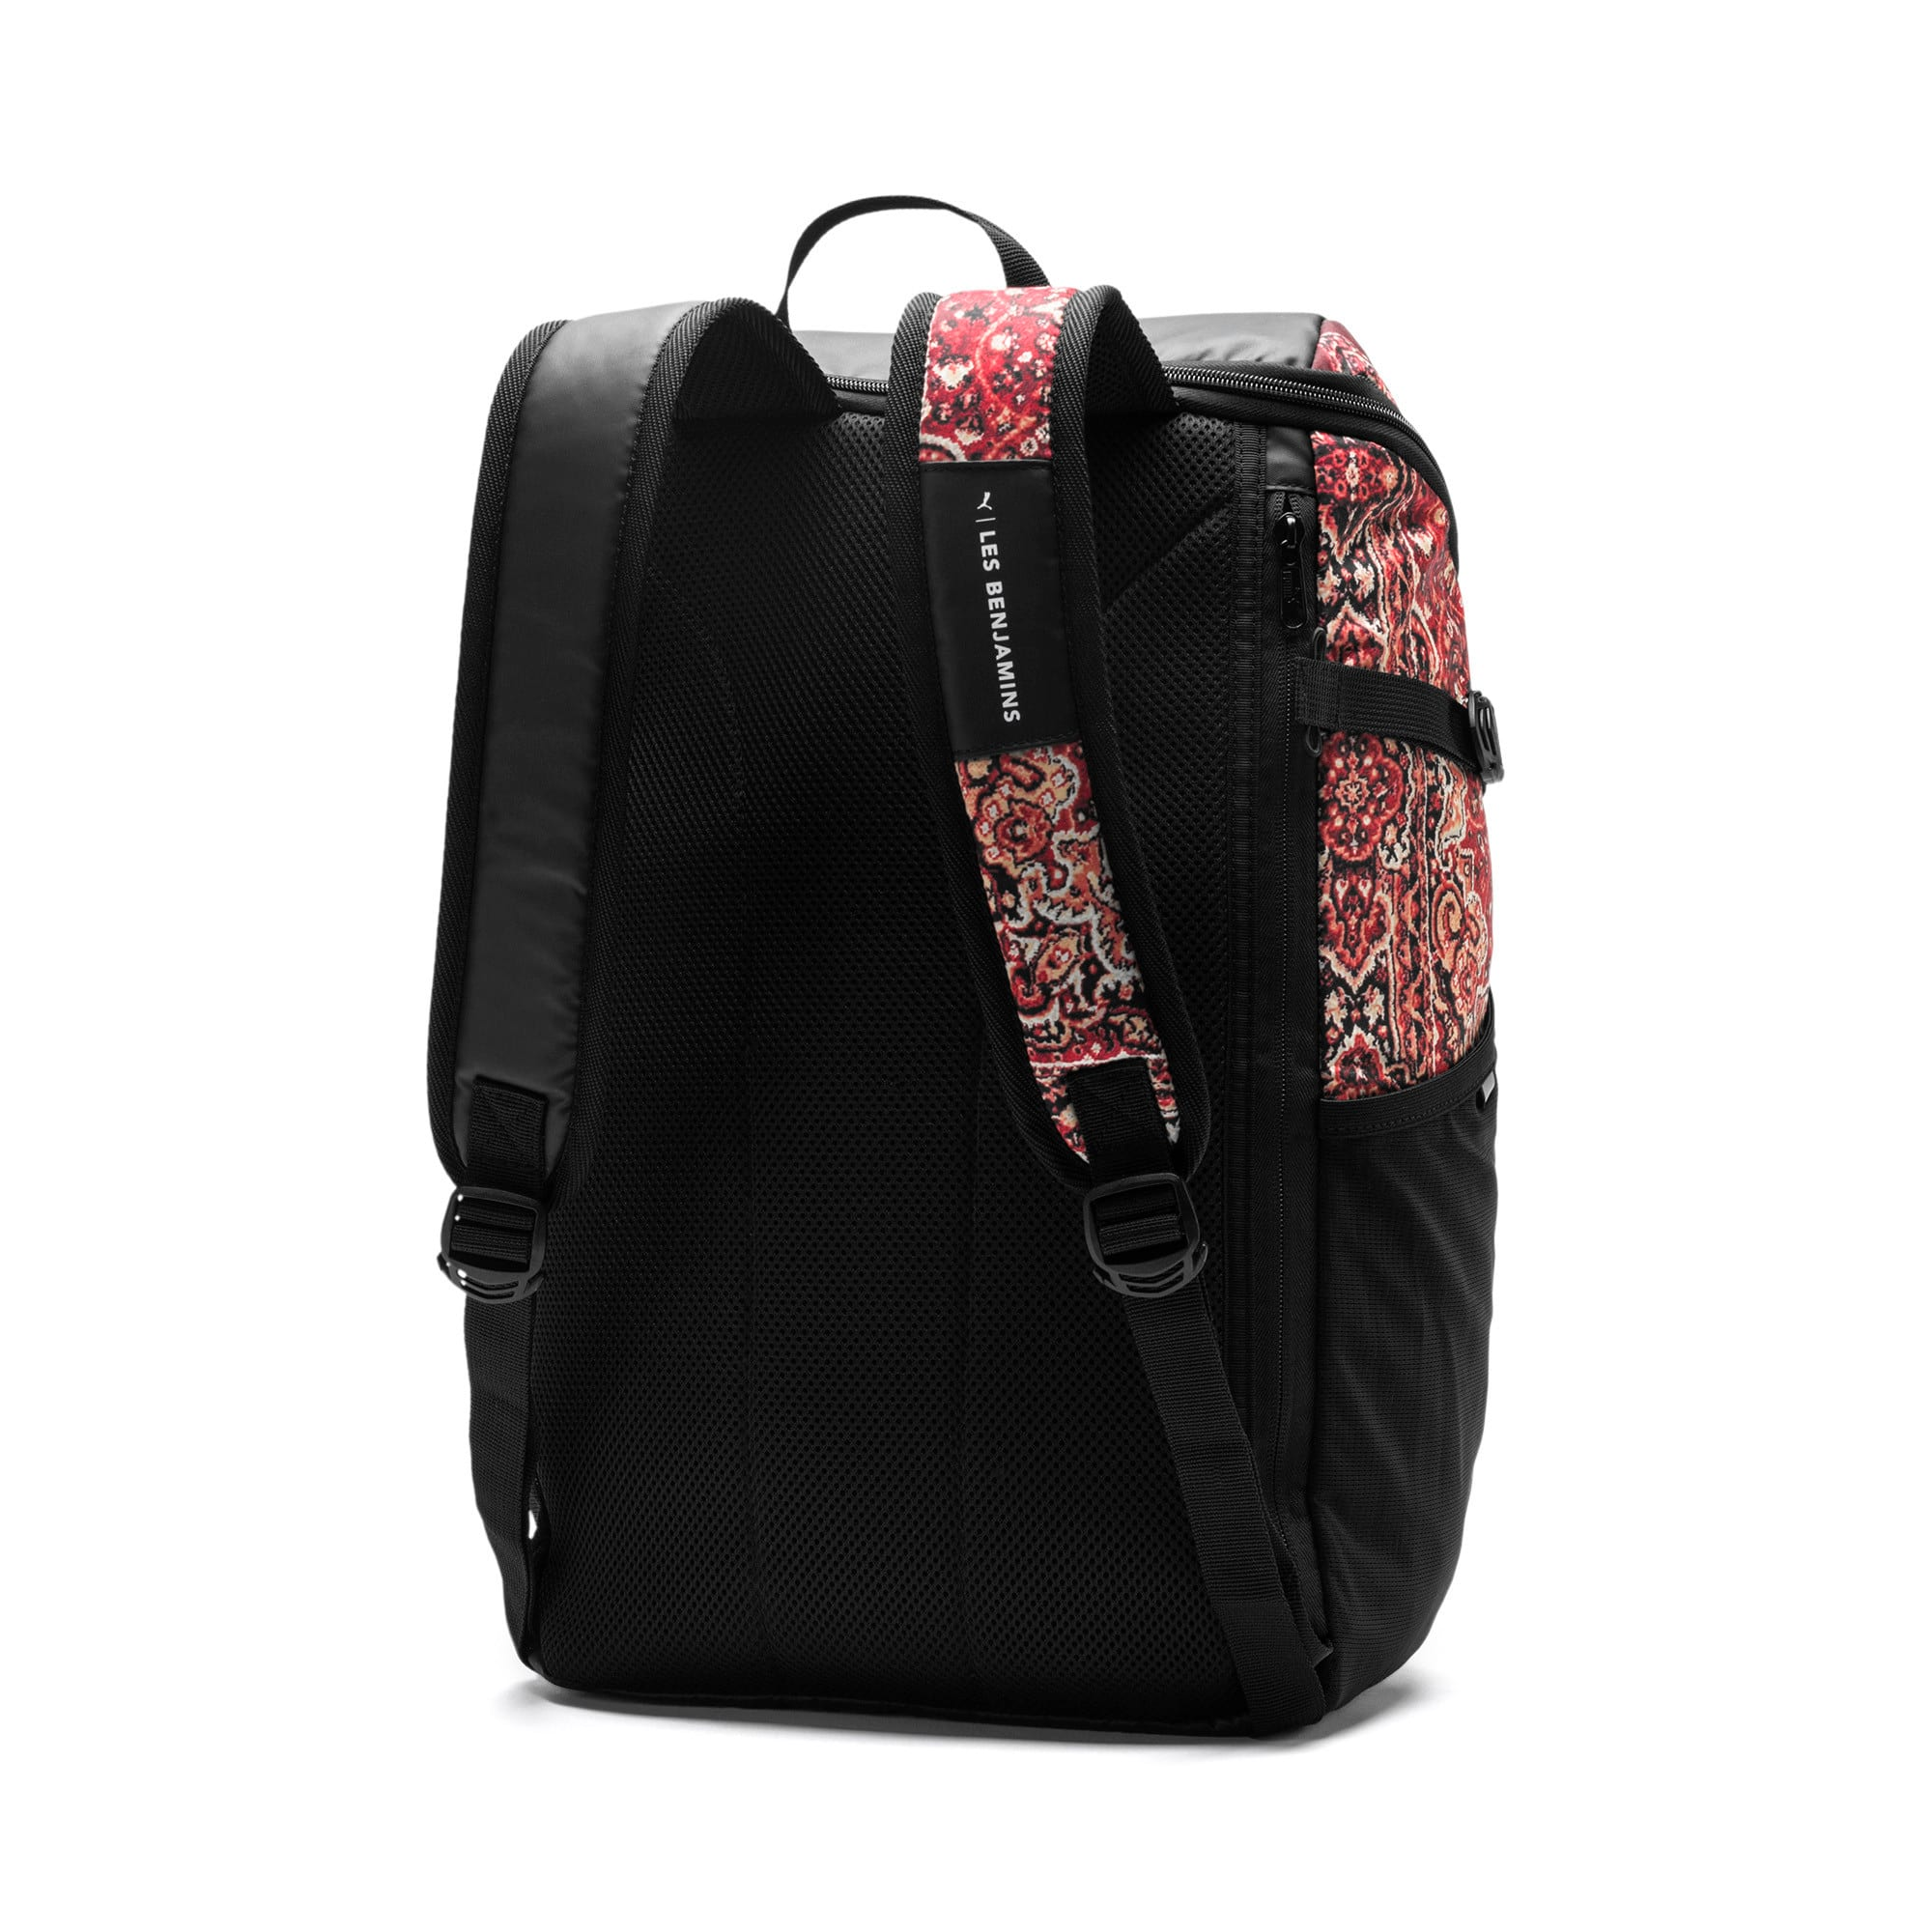 Thumbnail 5 of PUMA x LES BENJAMINS Backpack, Puma Black-AOP, medium